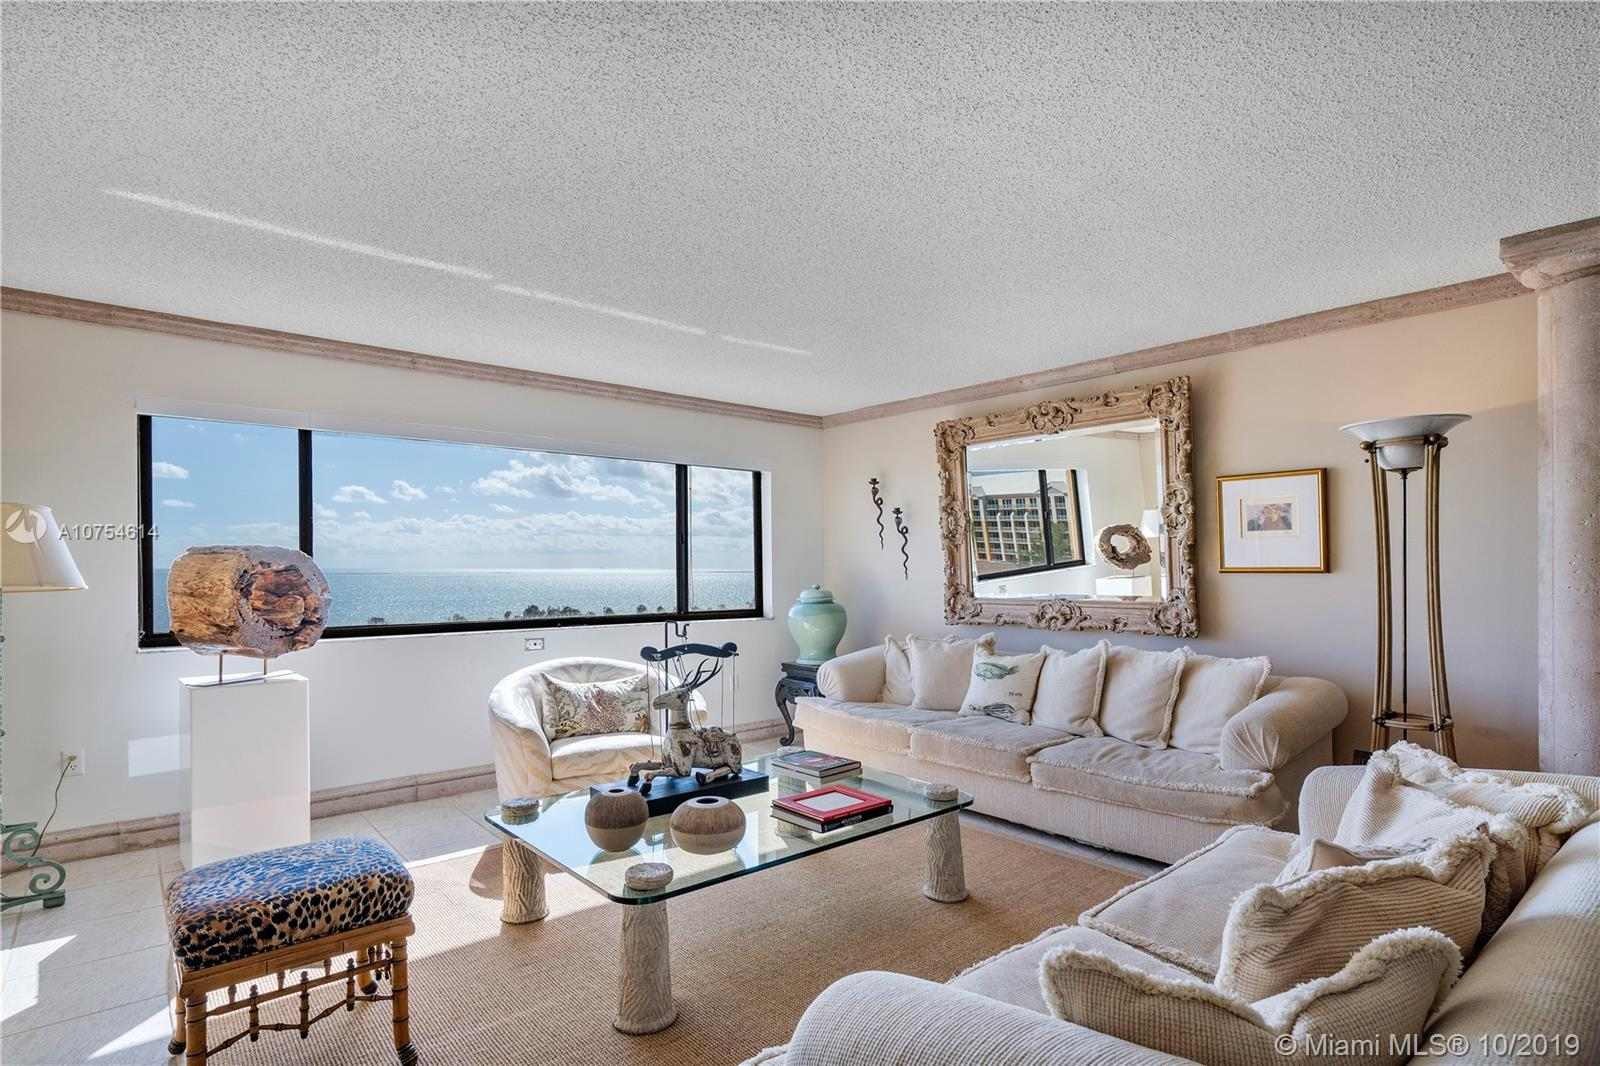 Incredible Ocean Views from every room of this Penthouse Unit. This 2Br/2Bt PH is very bright and spacious. Master Bedroom features two walk-in closets, with his/her sinks, tub and separate shower recently remodeled. 2nd Bedroom with a large closet and a detached bathroom. Large dining room area adjacent to the family/living room. Laundry Room. 2 assigned spaces, new pool, clubhouse, and on-site management. Private Beach Access included. Close to the best restaurants, shops and parks in Key Biscayne. Please text Victoria at 305-431-4090 to schedule showings.